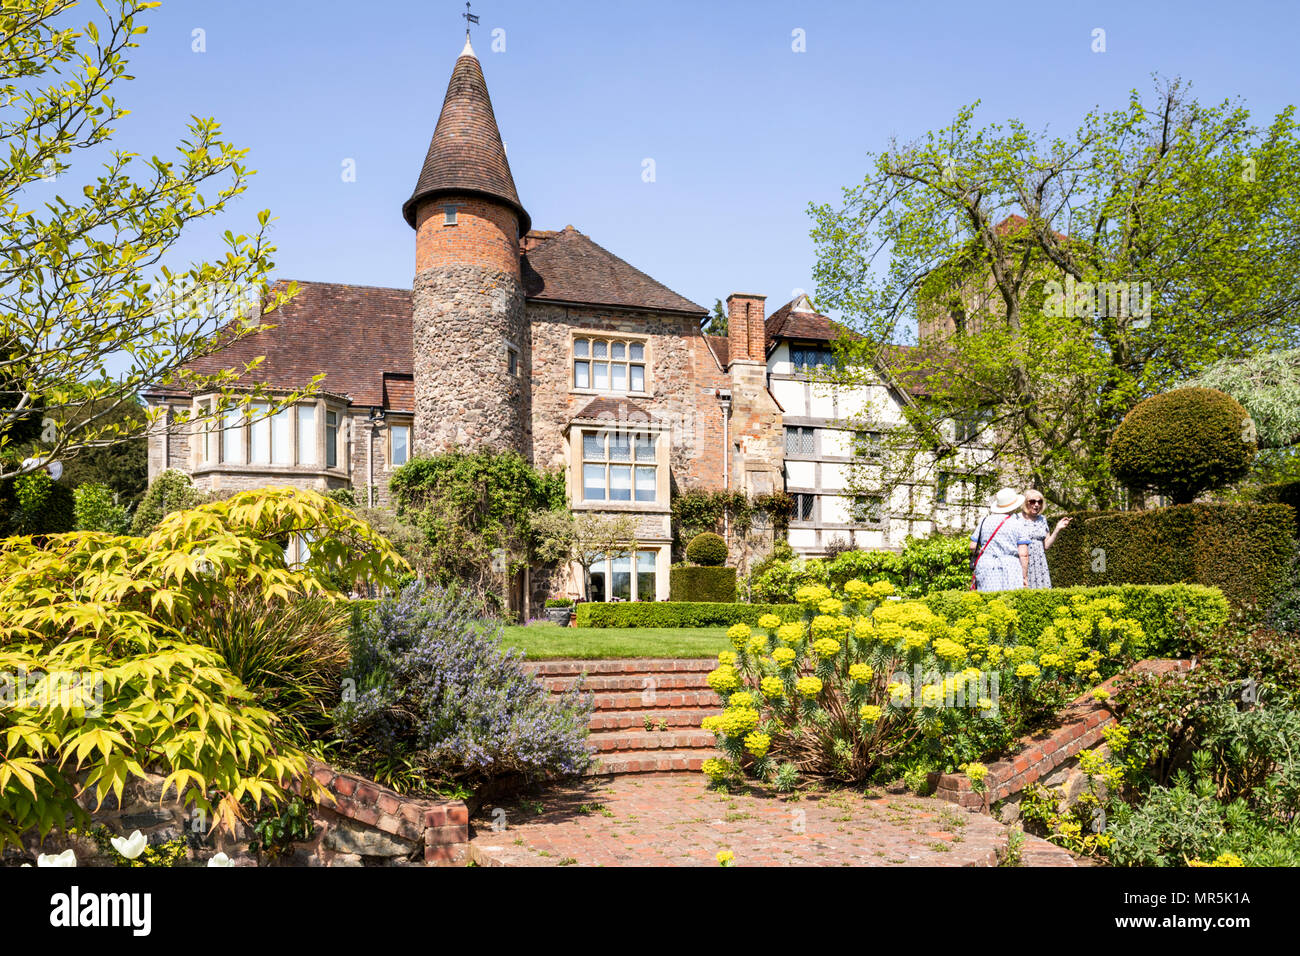 Little Malvern Court a 15th century Priors Hall at Little Malvern, Worcestershire UK - Stock Image